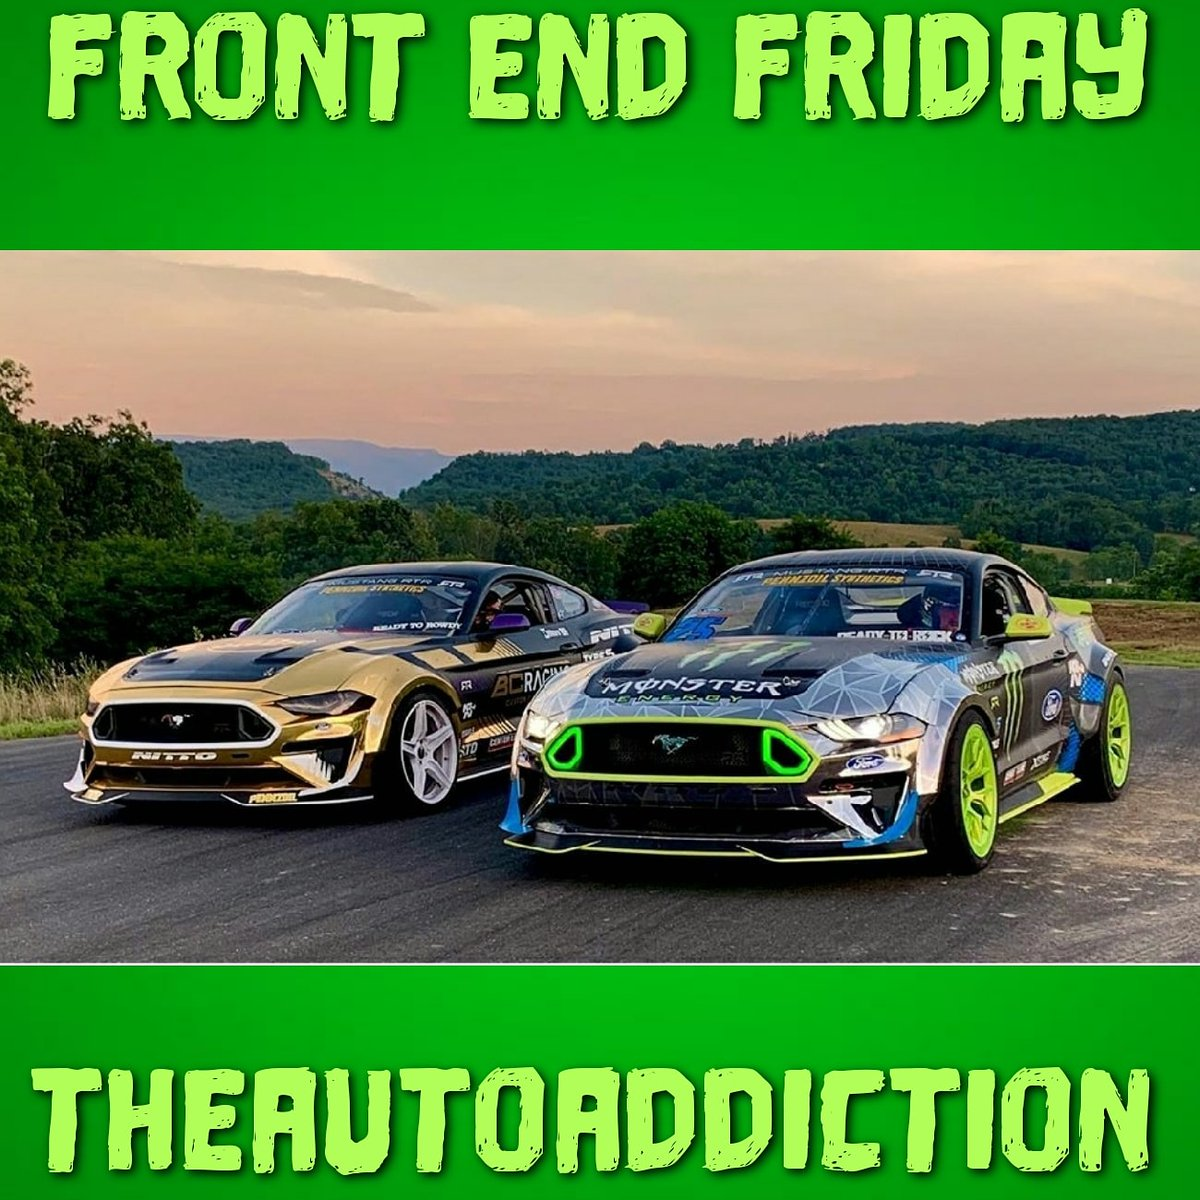 #frontendfriday #funhaver #theautoaddiction #shoplocal #stickers #hats #merch #swag #clothingline #fashion #clothingbrand #clothing #streetwear #apparel #style #streetstyle #clothingstore #brand #tshirt #followme #streetfashion #design #branding #clothingcompany #localbrandpic.twitter.com/fau3nL6oER